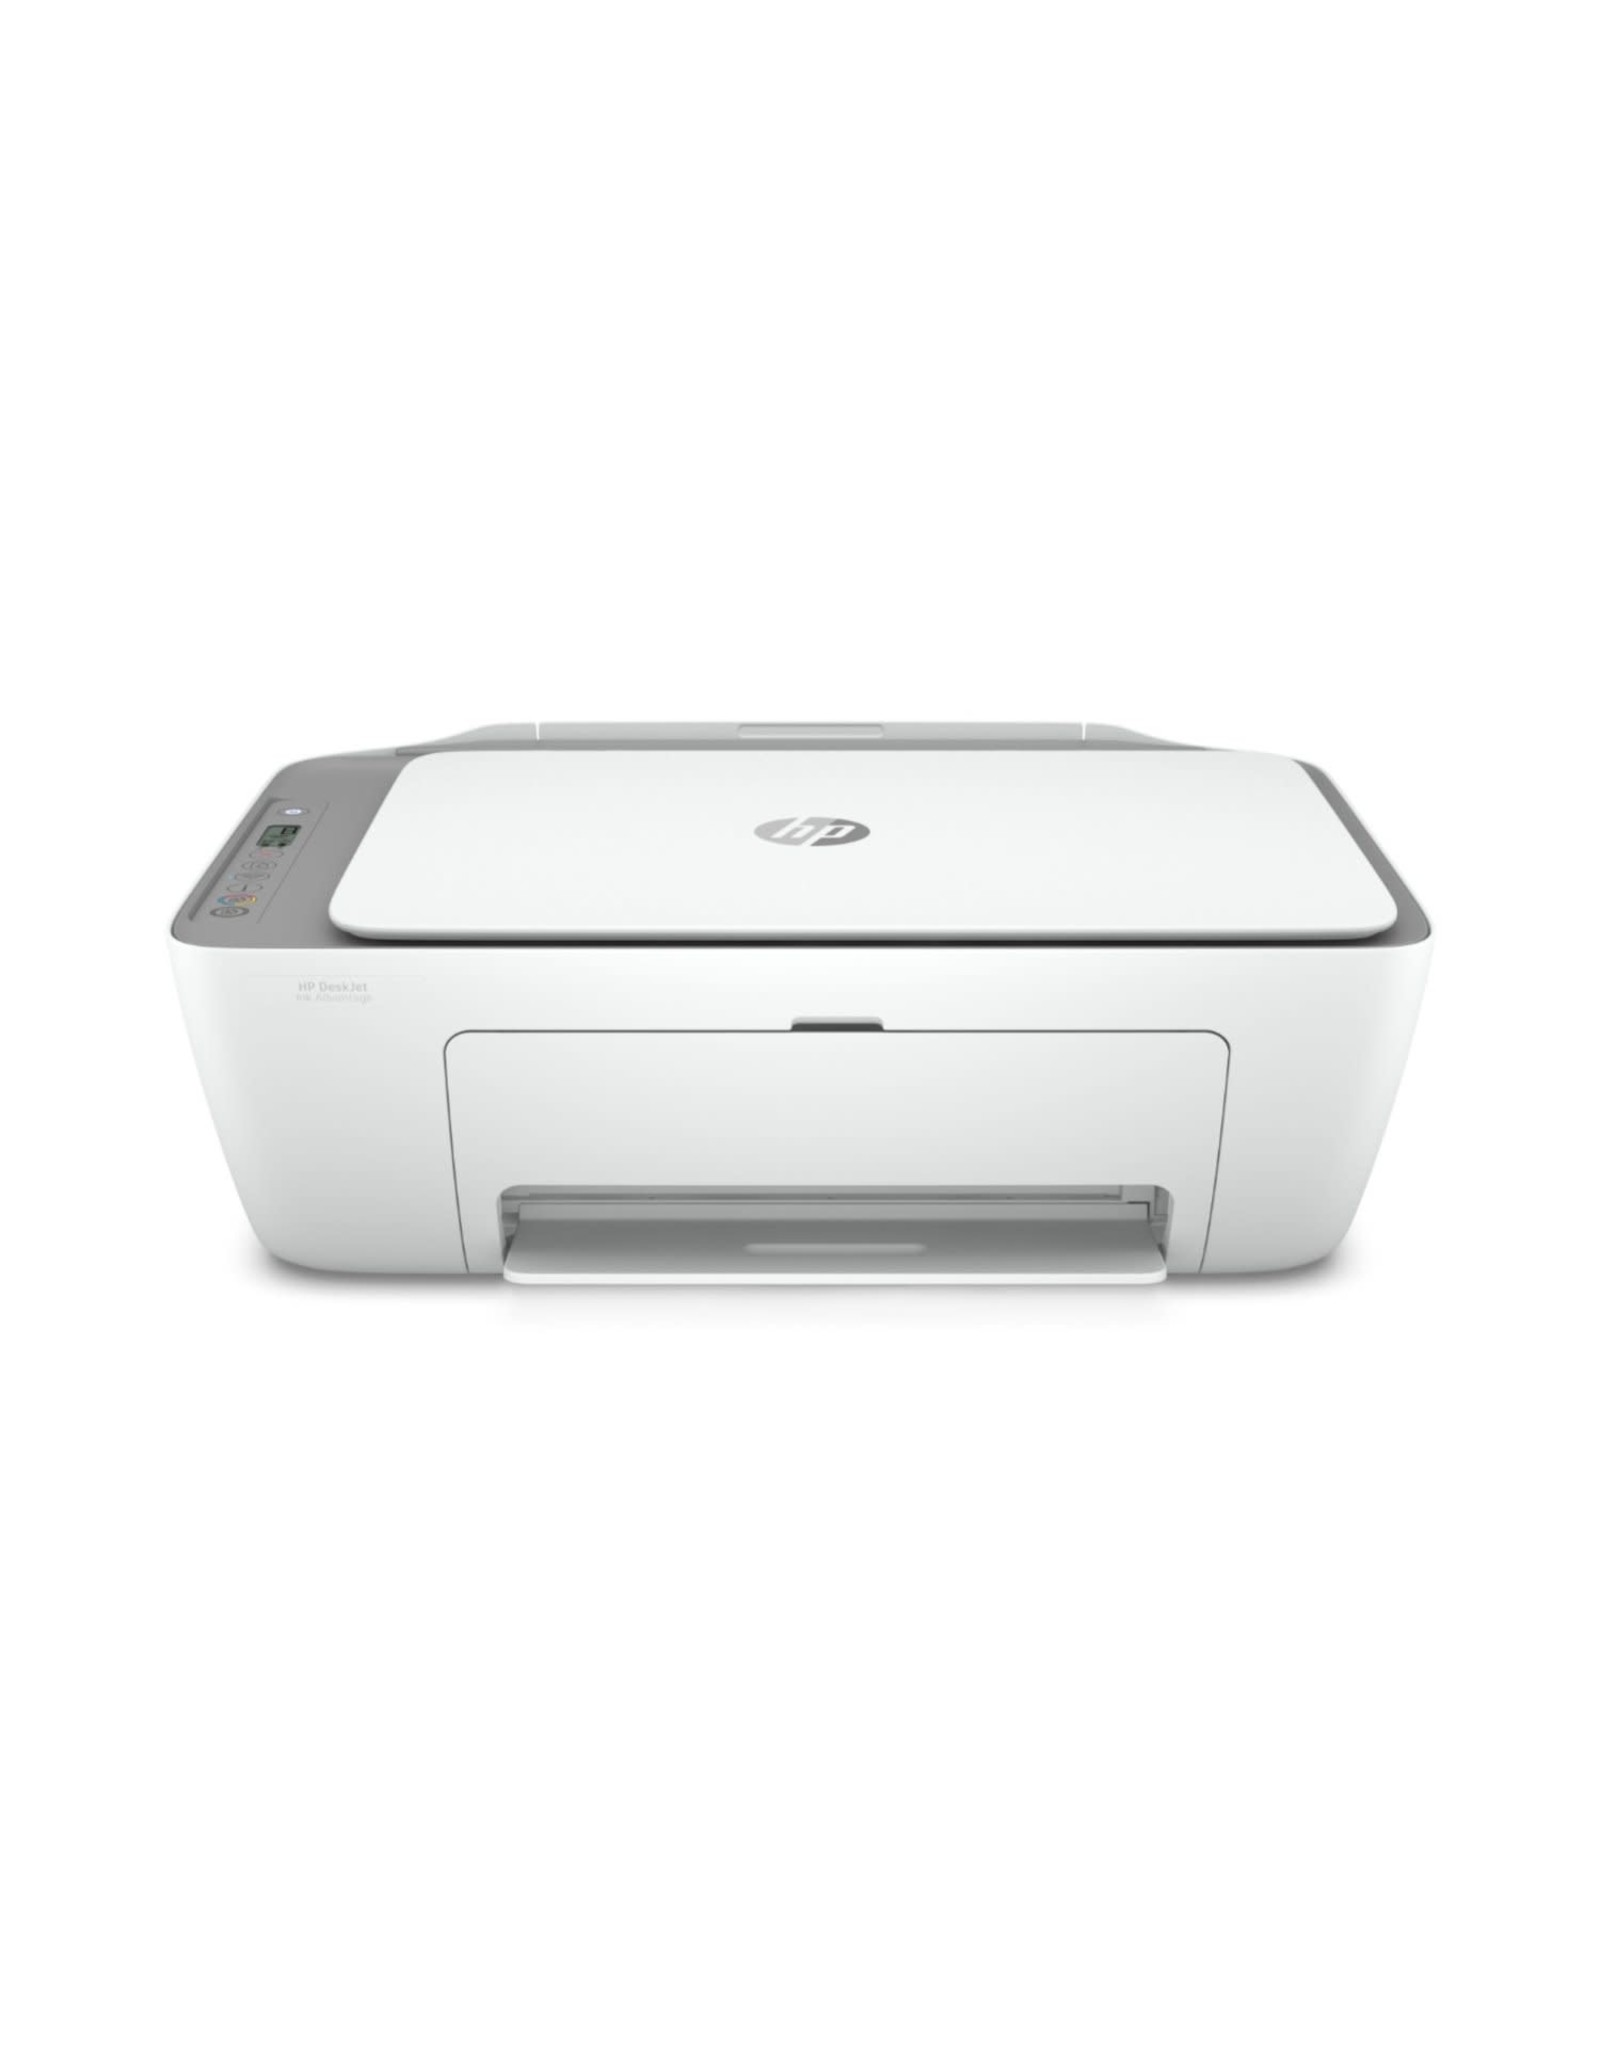 HP HP Deskjet 2775 Printer